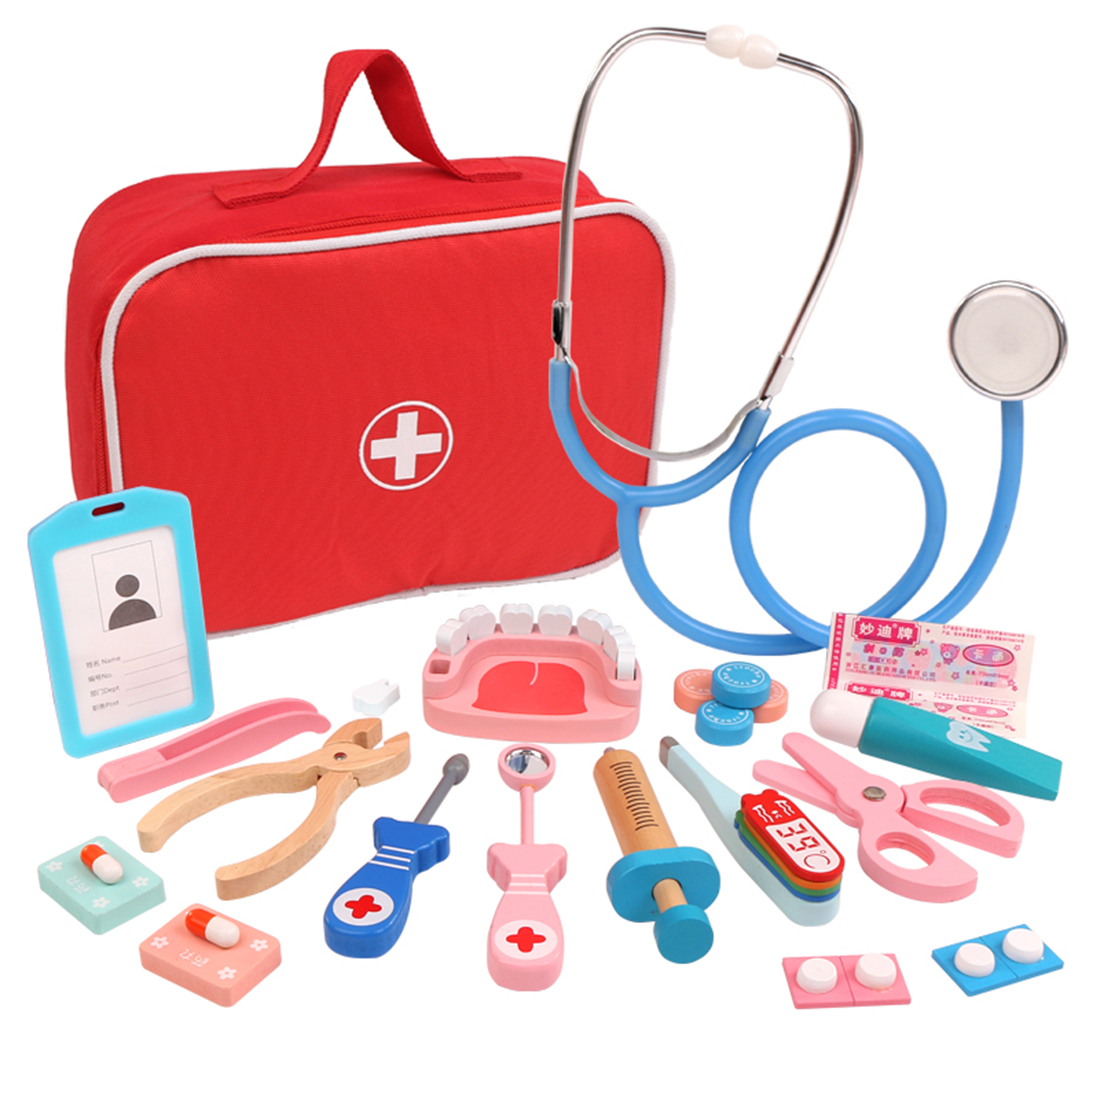 8pcs/17pcs/28Pcs Children Wooden Pretend play Dentist Toolbox Doctor toy Medical Playset with Stethoscope gifts 2019 new arrival image